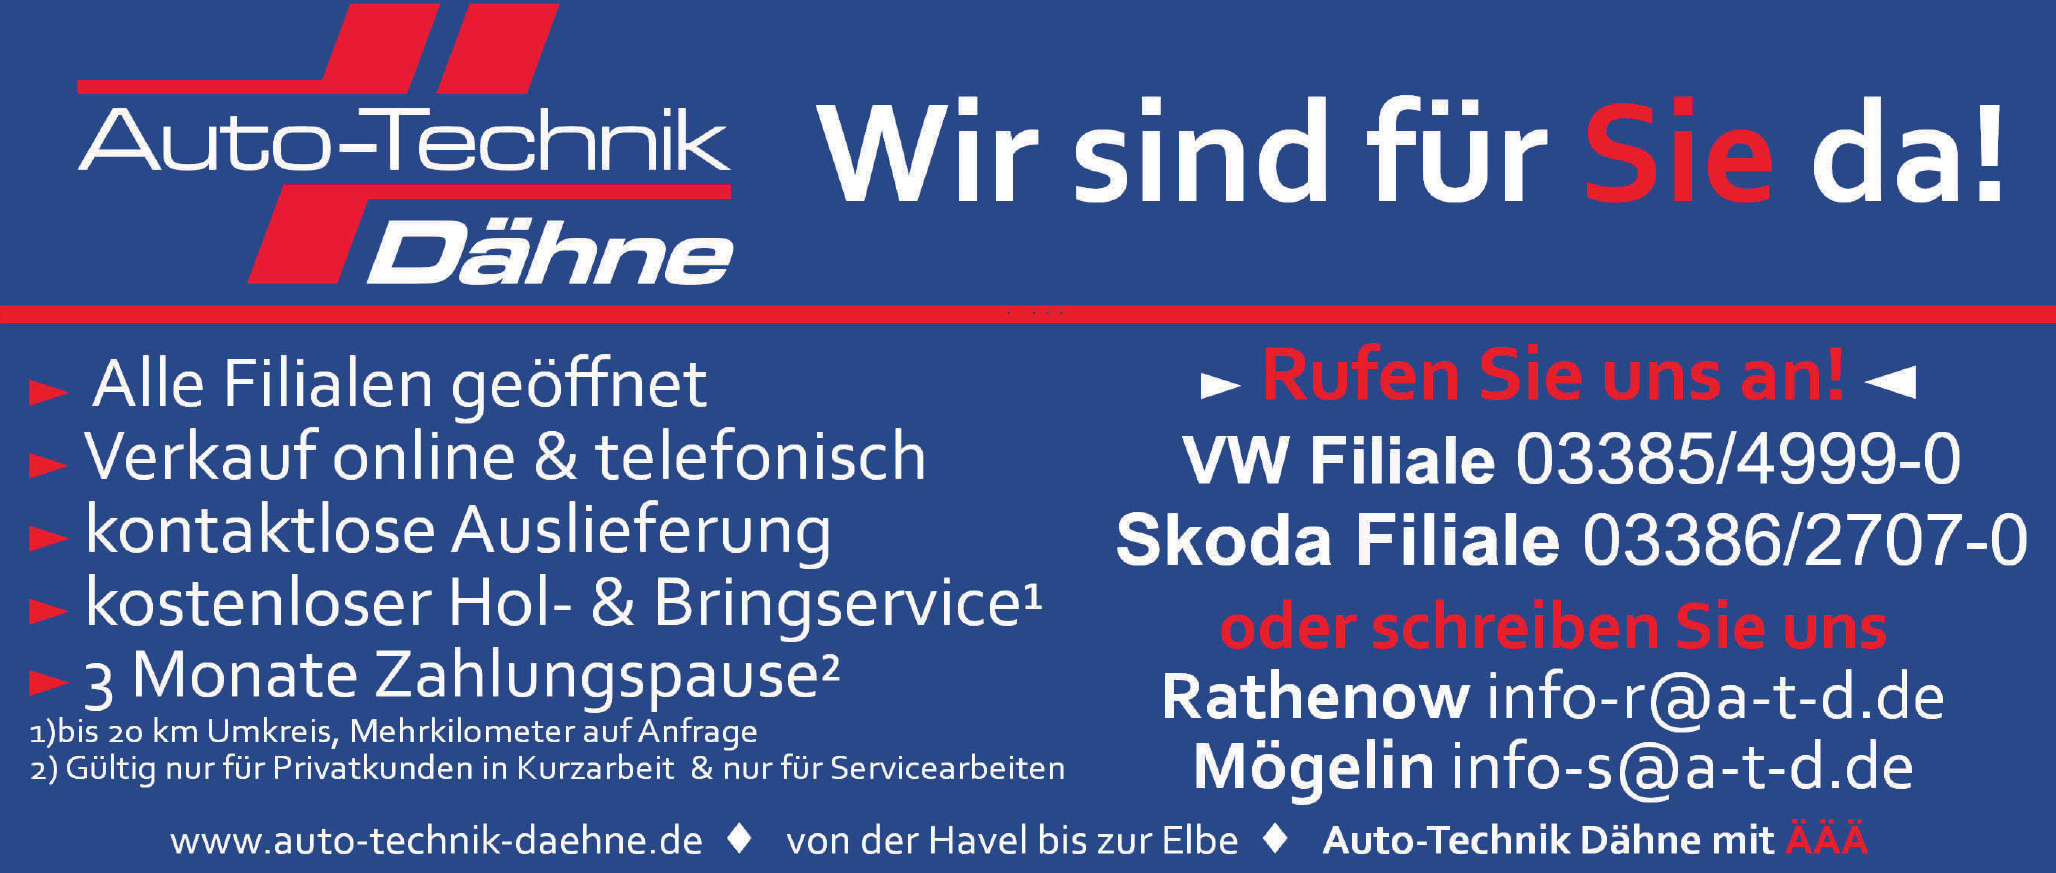 Auto-Technik Dähne - VW Filiale